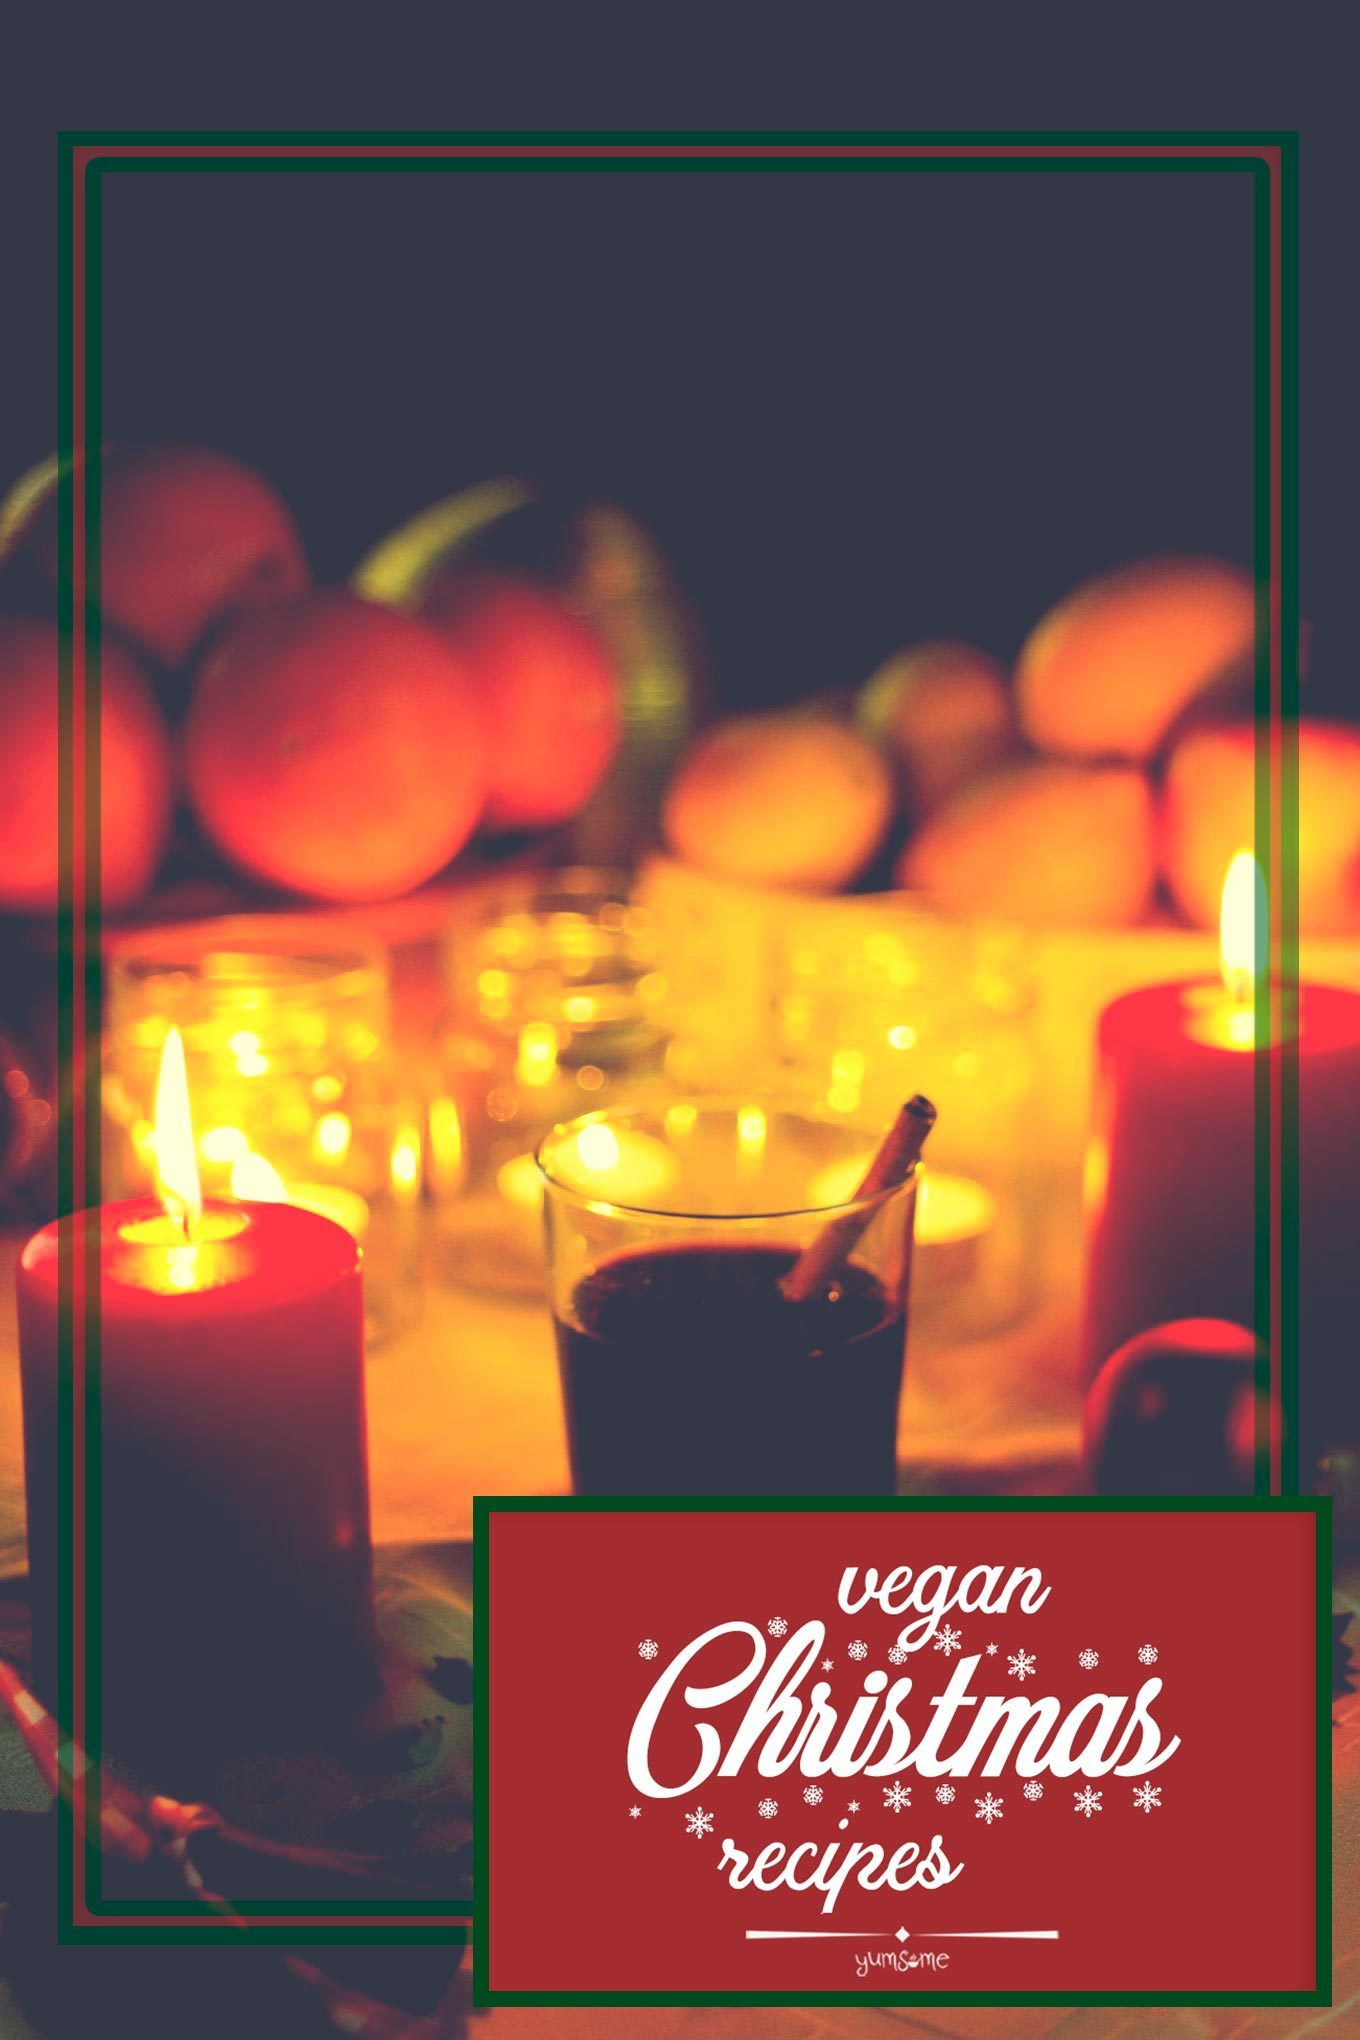 A glass of mulled wine with a cinnamon stick, surrounded by candles and Christmas fruits.